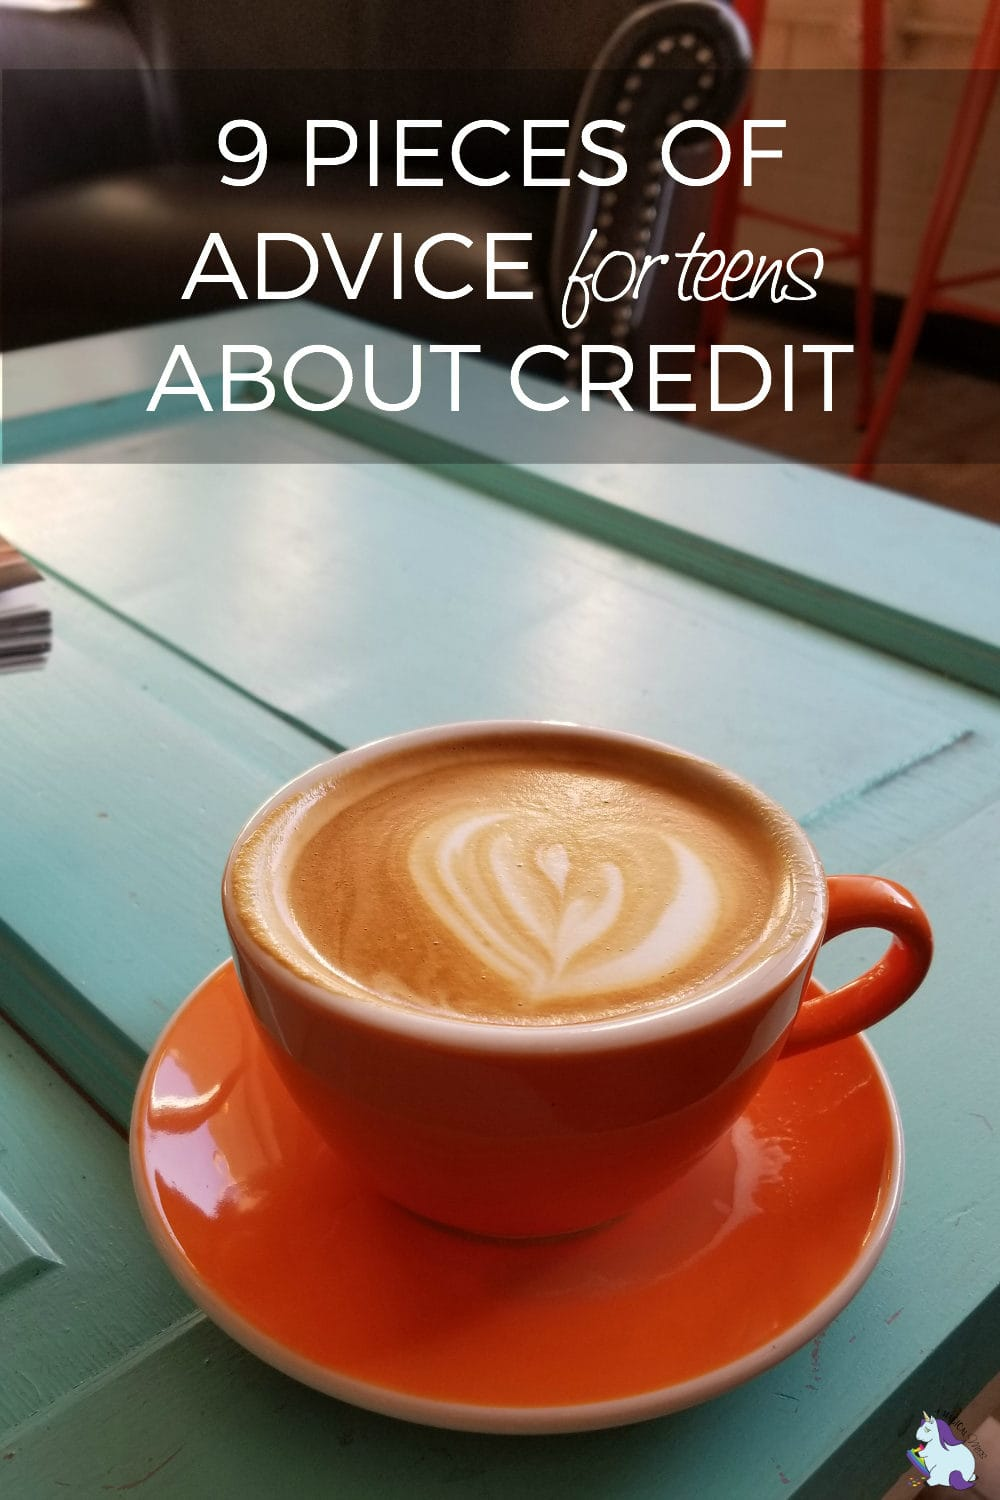 9 pieces of advice for teens about credit